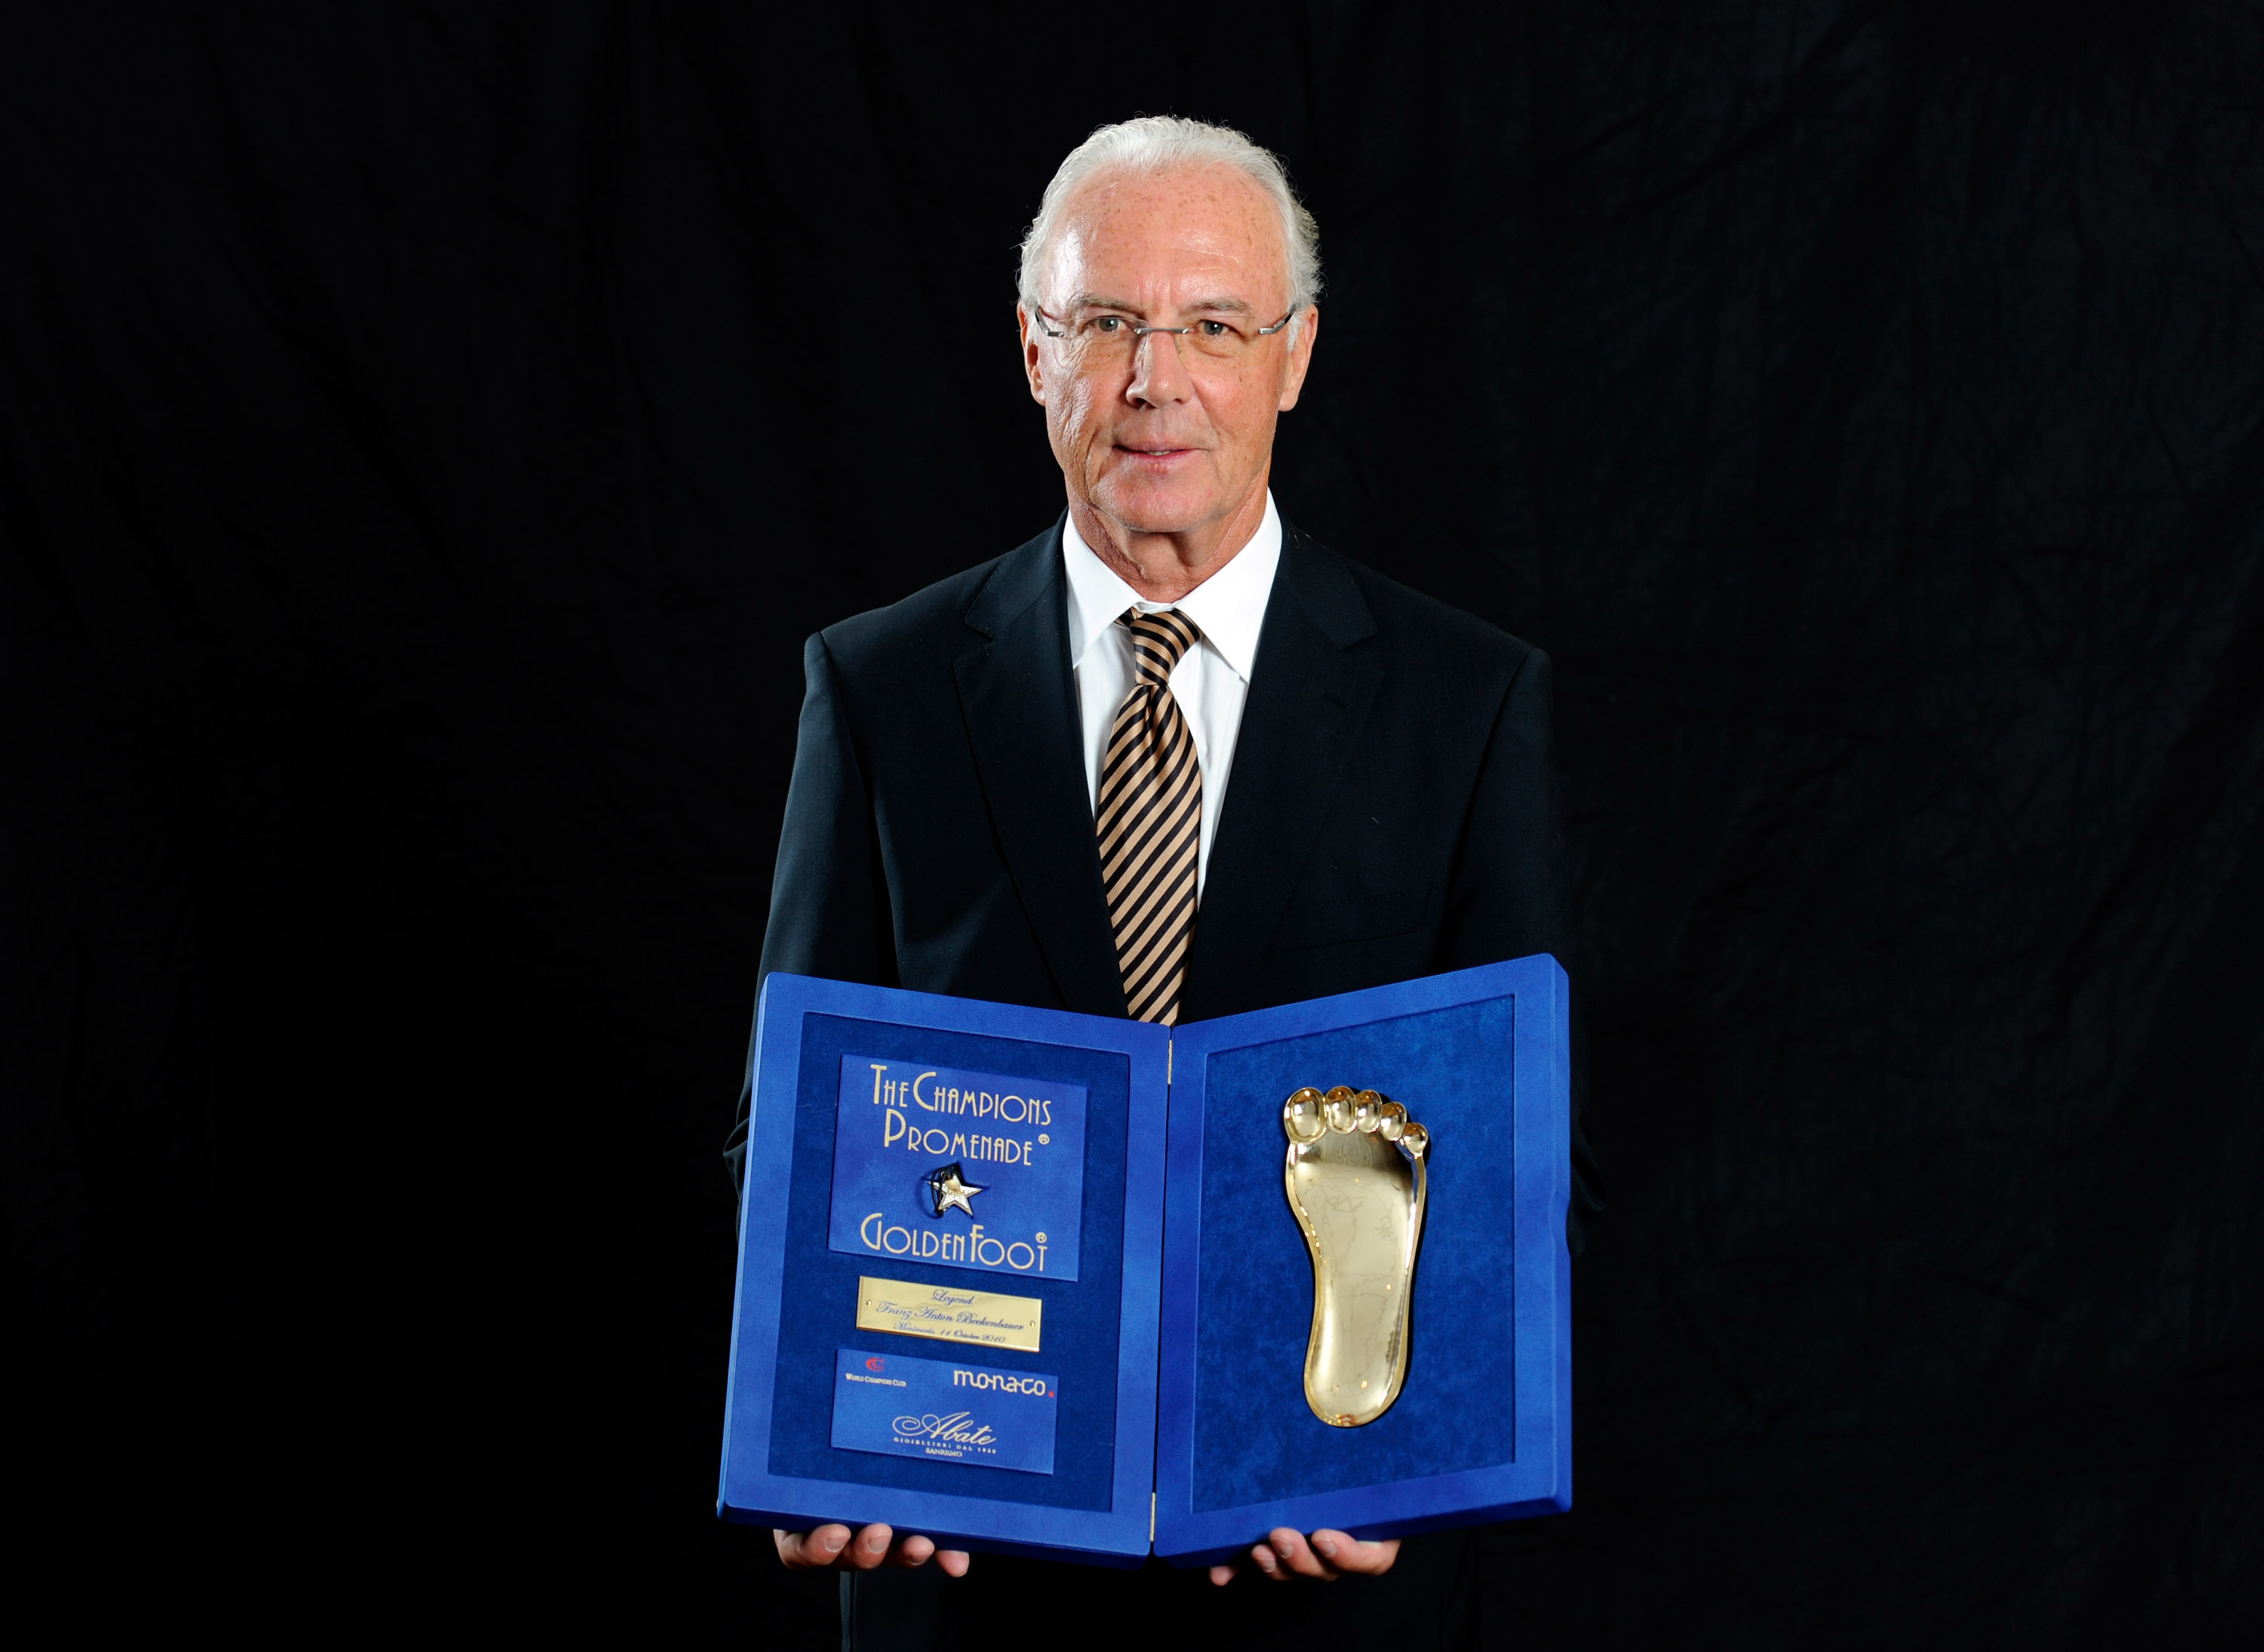 MONACO - OCTOBER 11:  Franz Beckenbauer during the Golden Foot Awards ceremony at Fairmont Hotel on October 11, 2010 in Monaco, Monaco.  (Photo by Claudio Villa/Getty Images for Golden Foot)